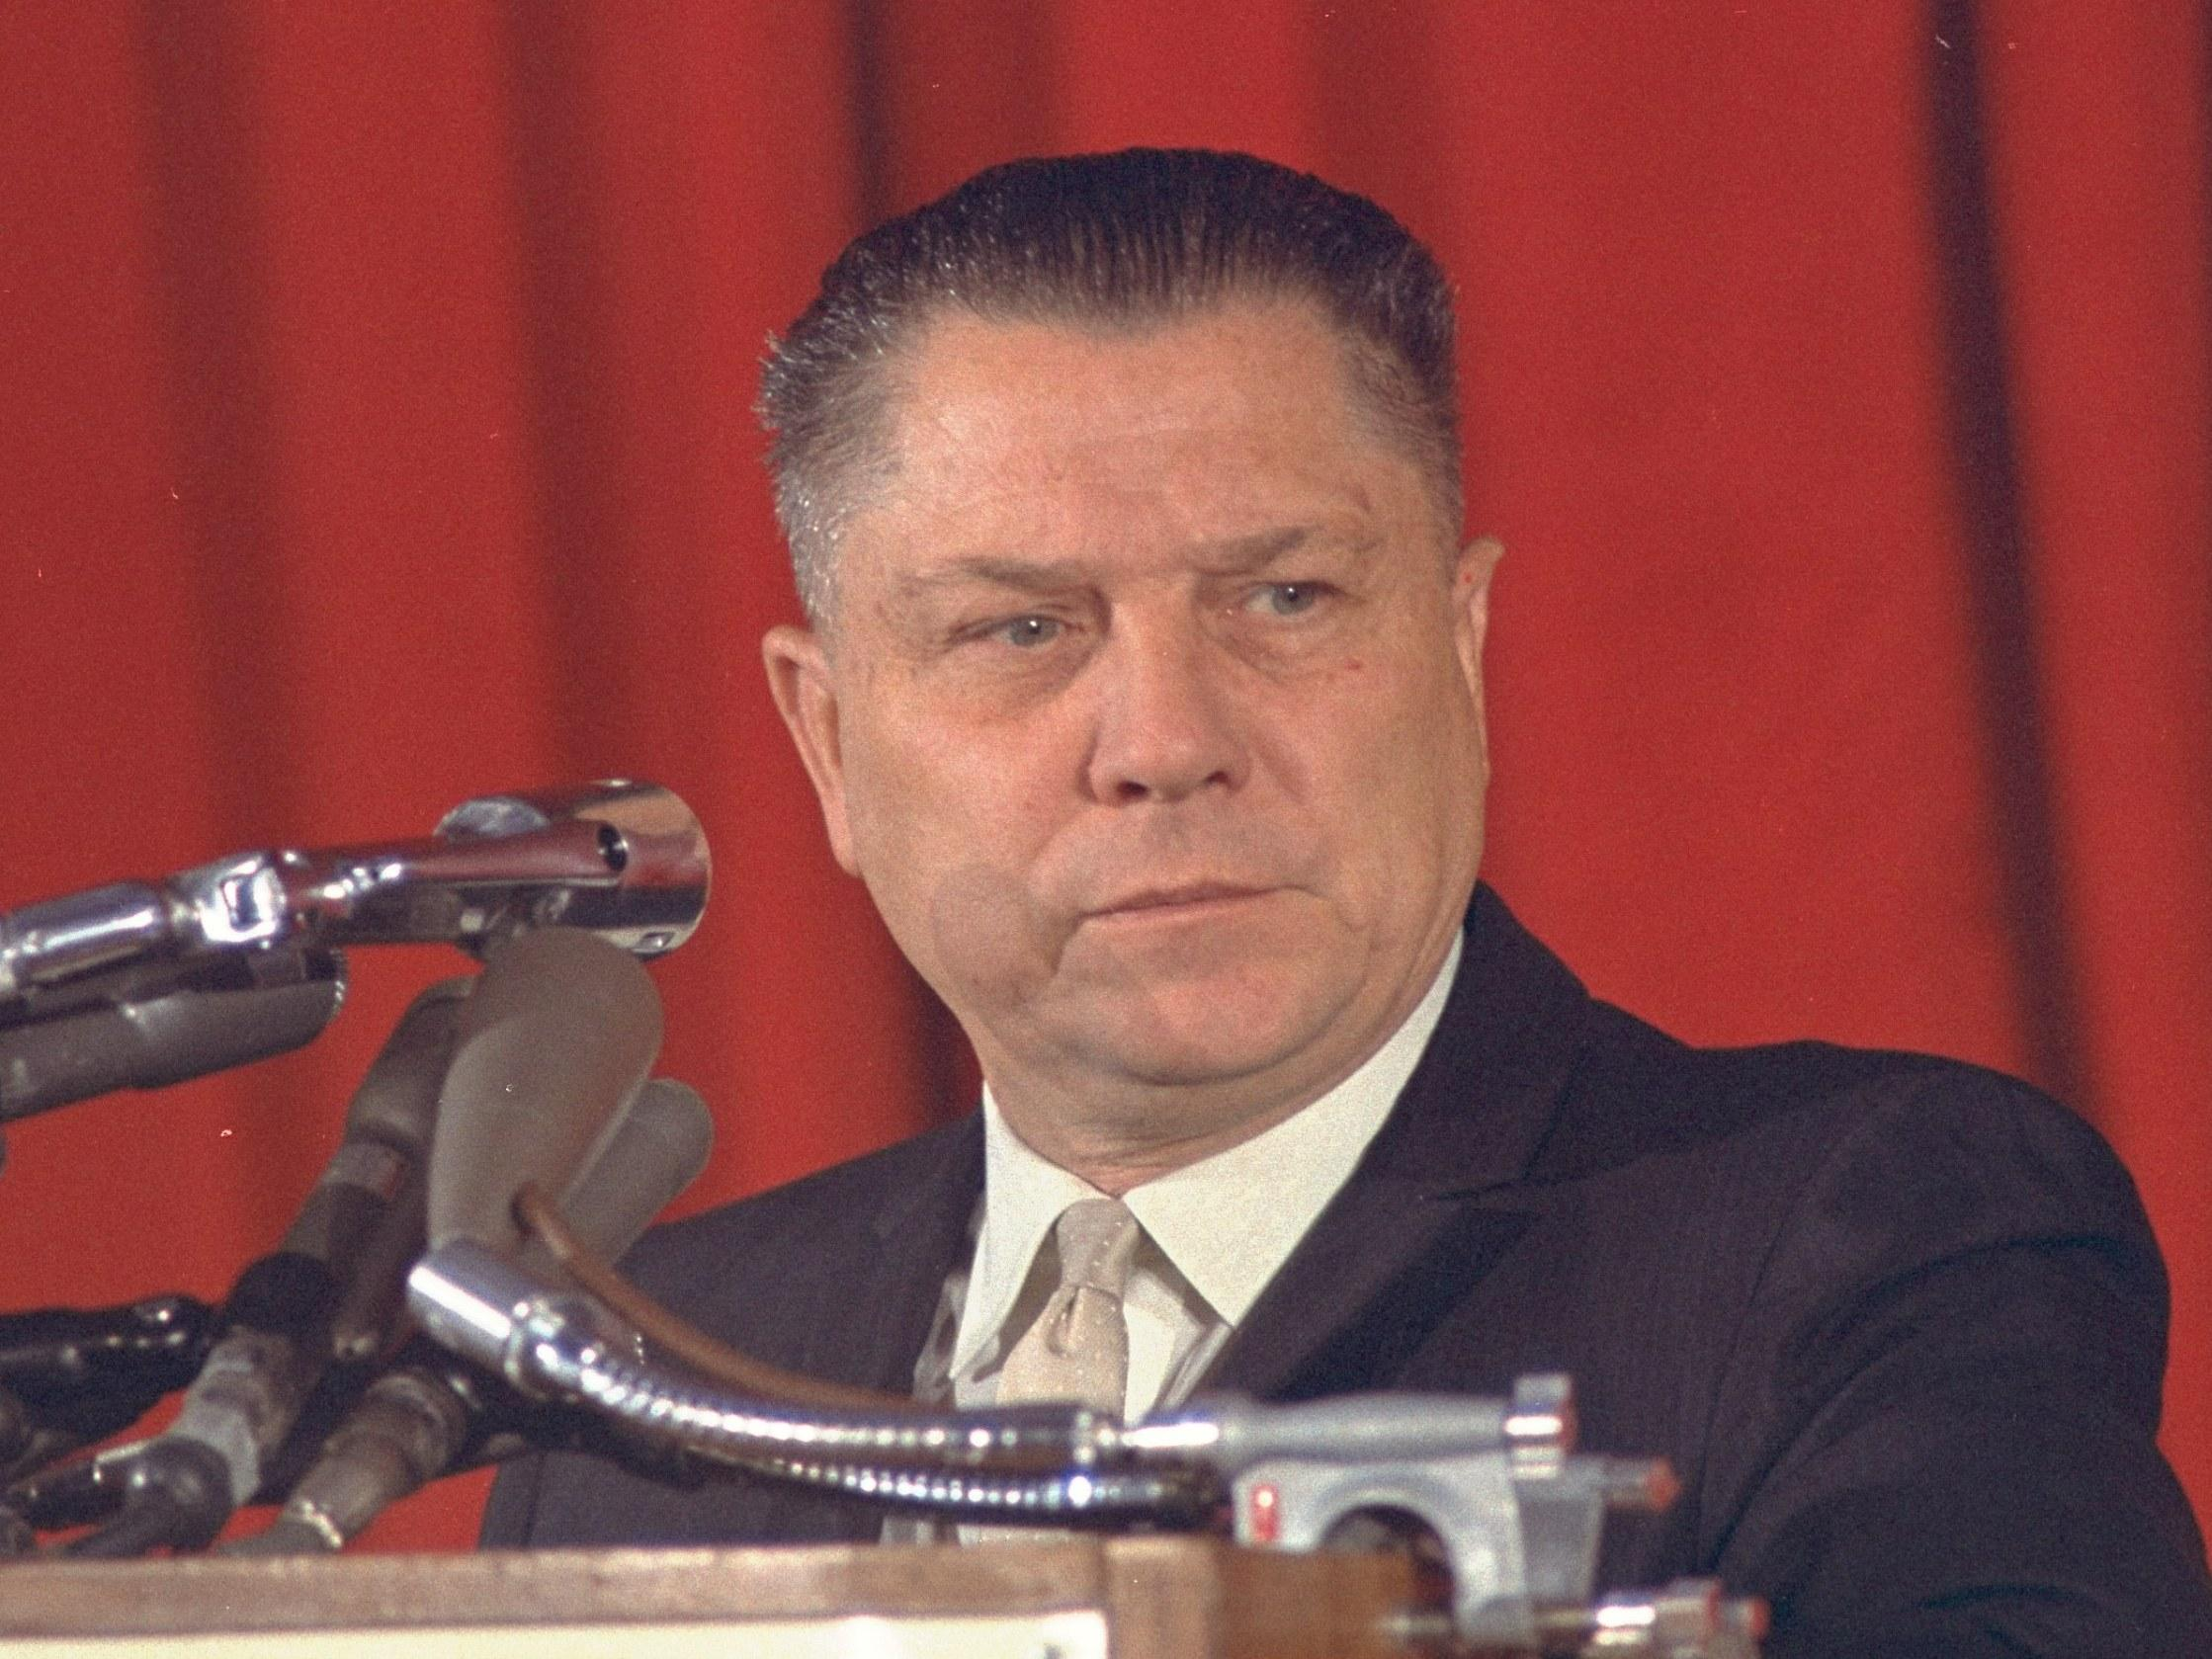 Jimmy Hoffa Still Searching Still Waiting Wjct News